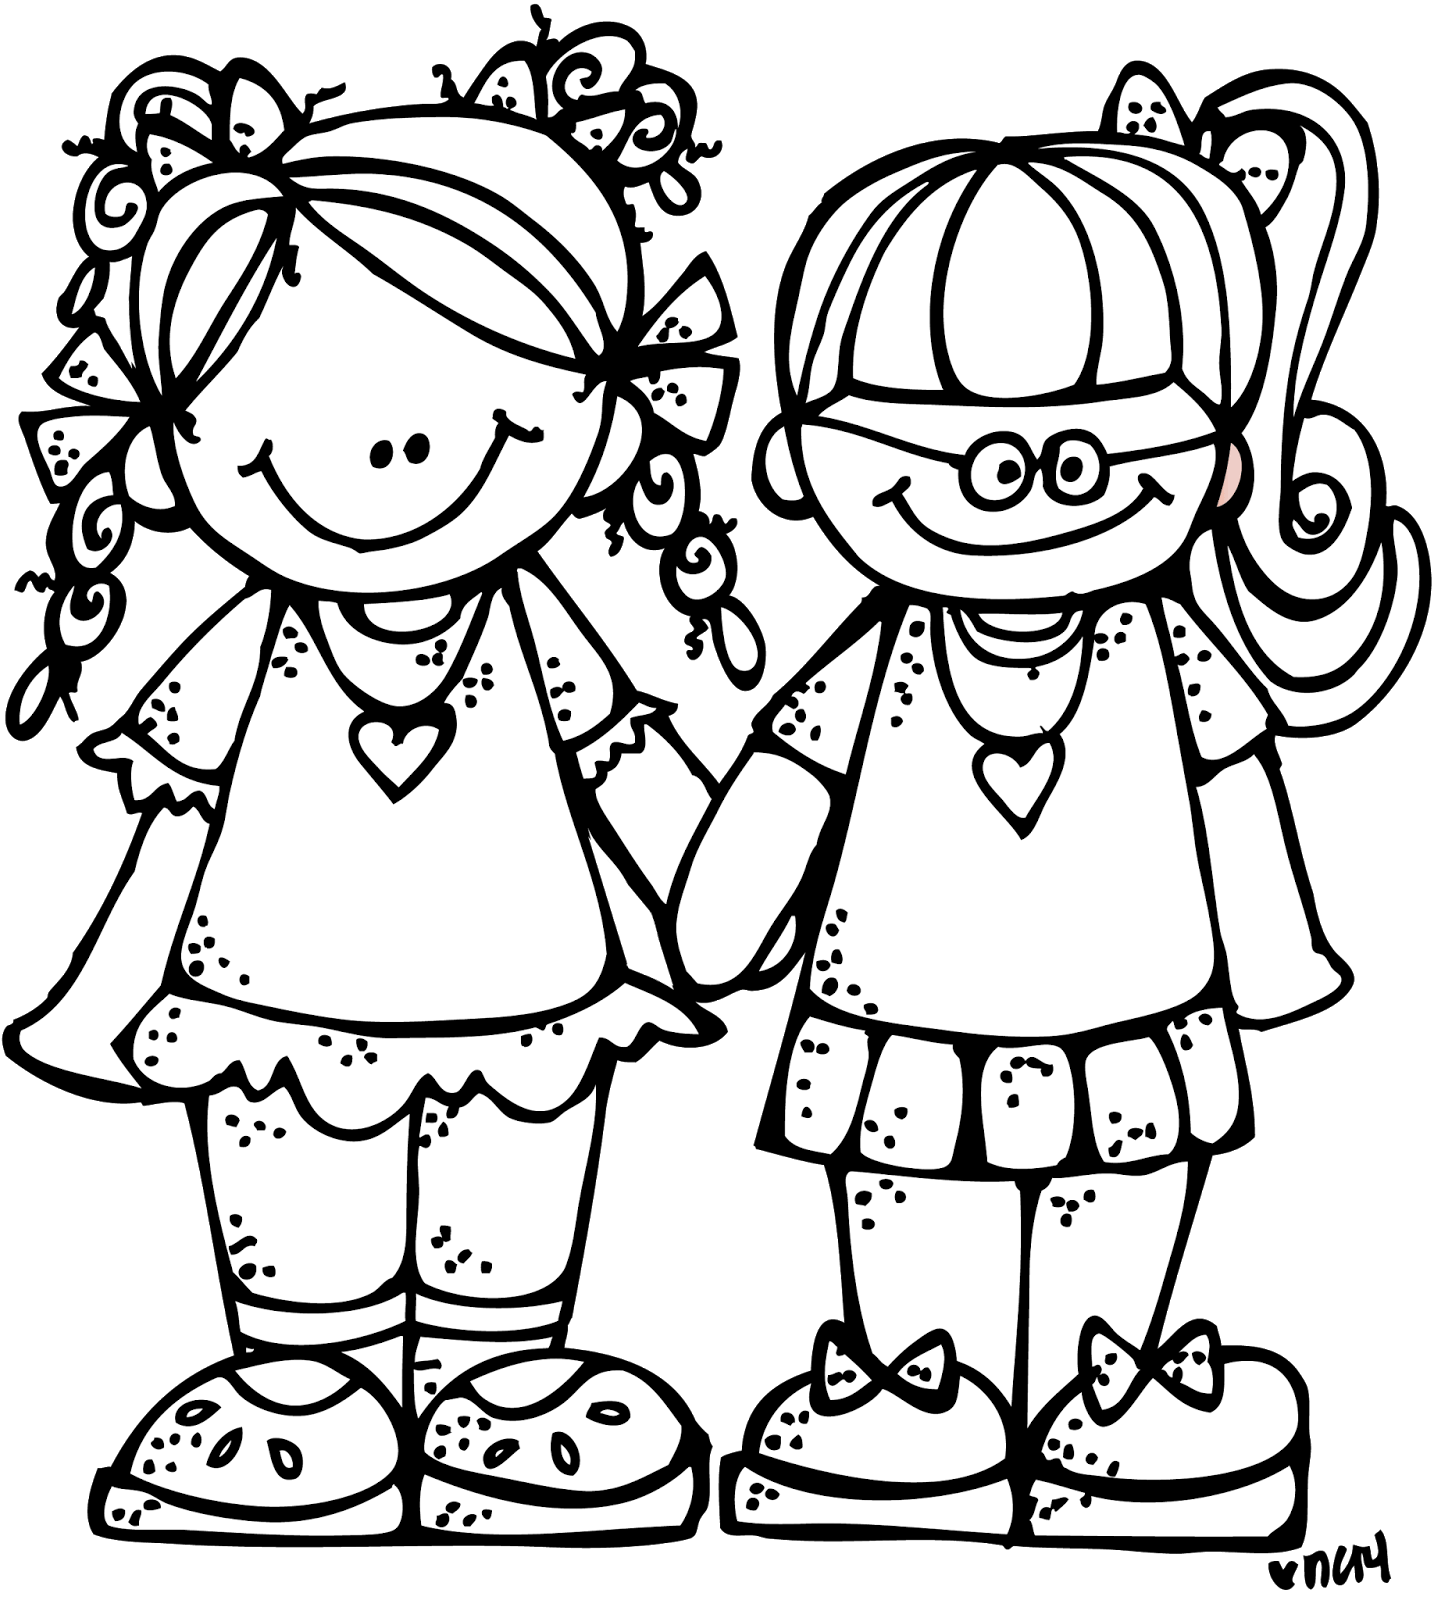 Twins clipart drawing, Twins drawing Transparent FREE for.